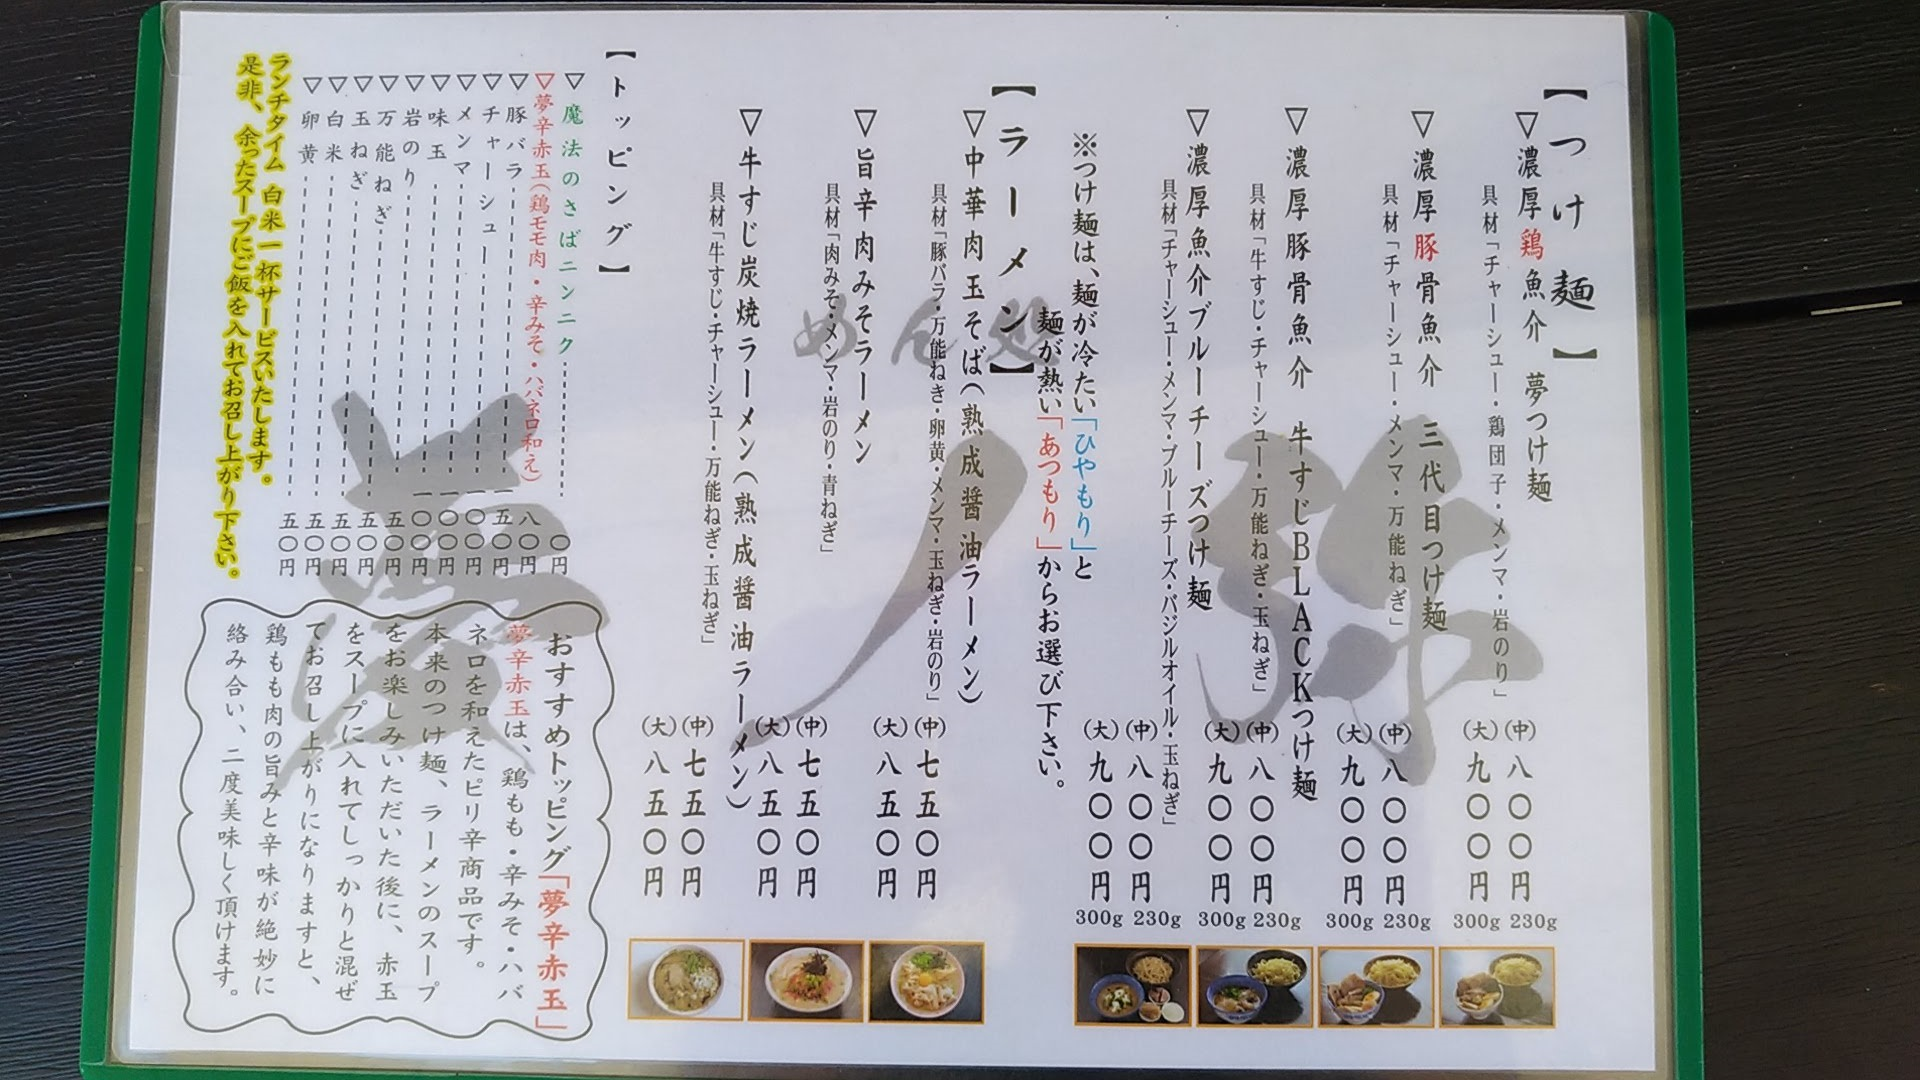 the menu of Yumenoya 1